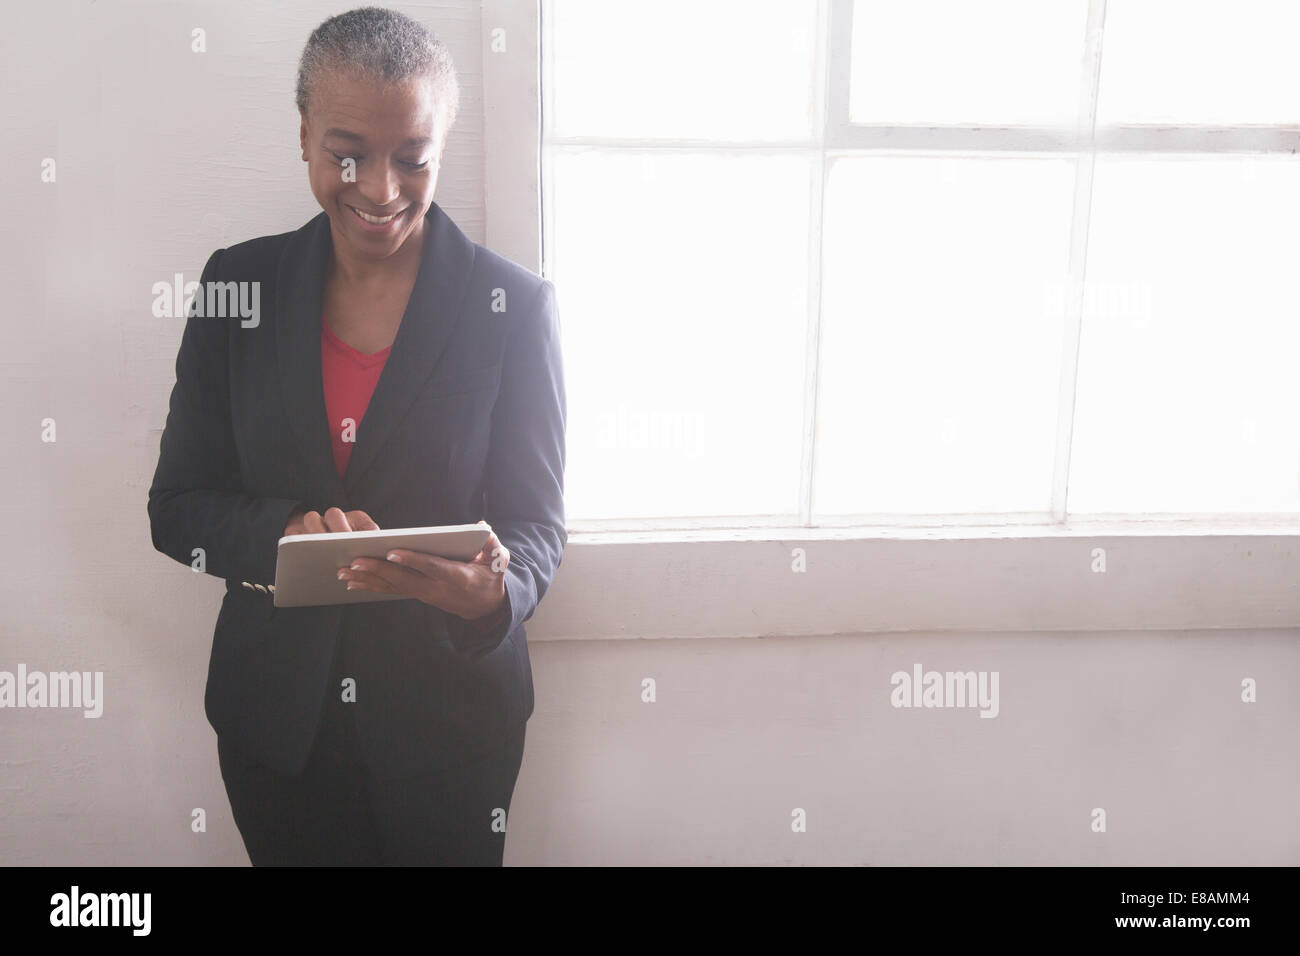 Mature woman using digital tablet, portrait - Stock Image